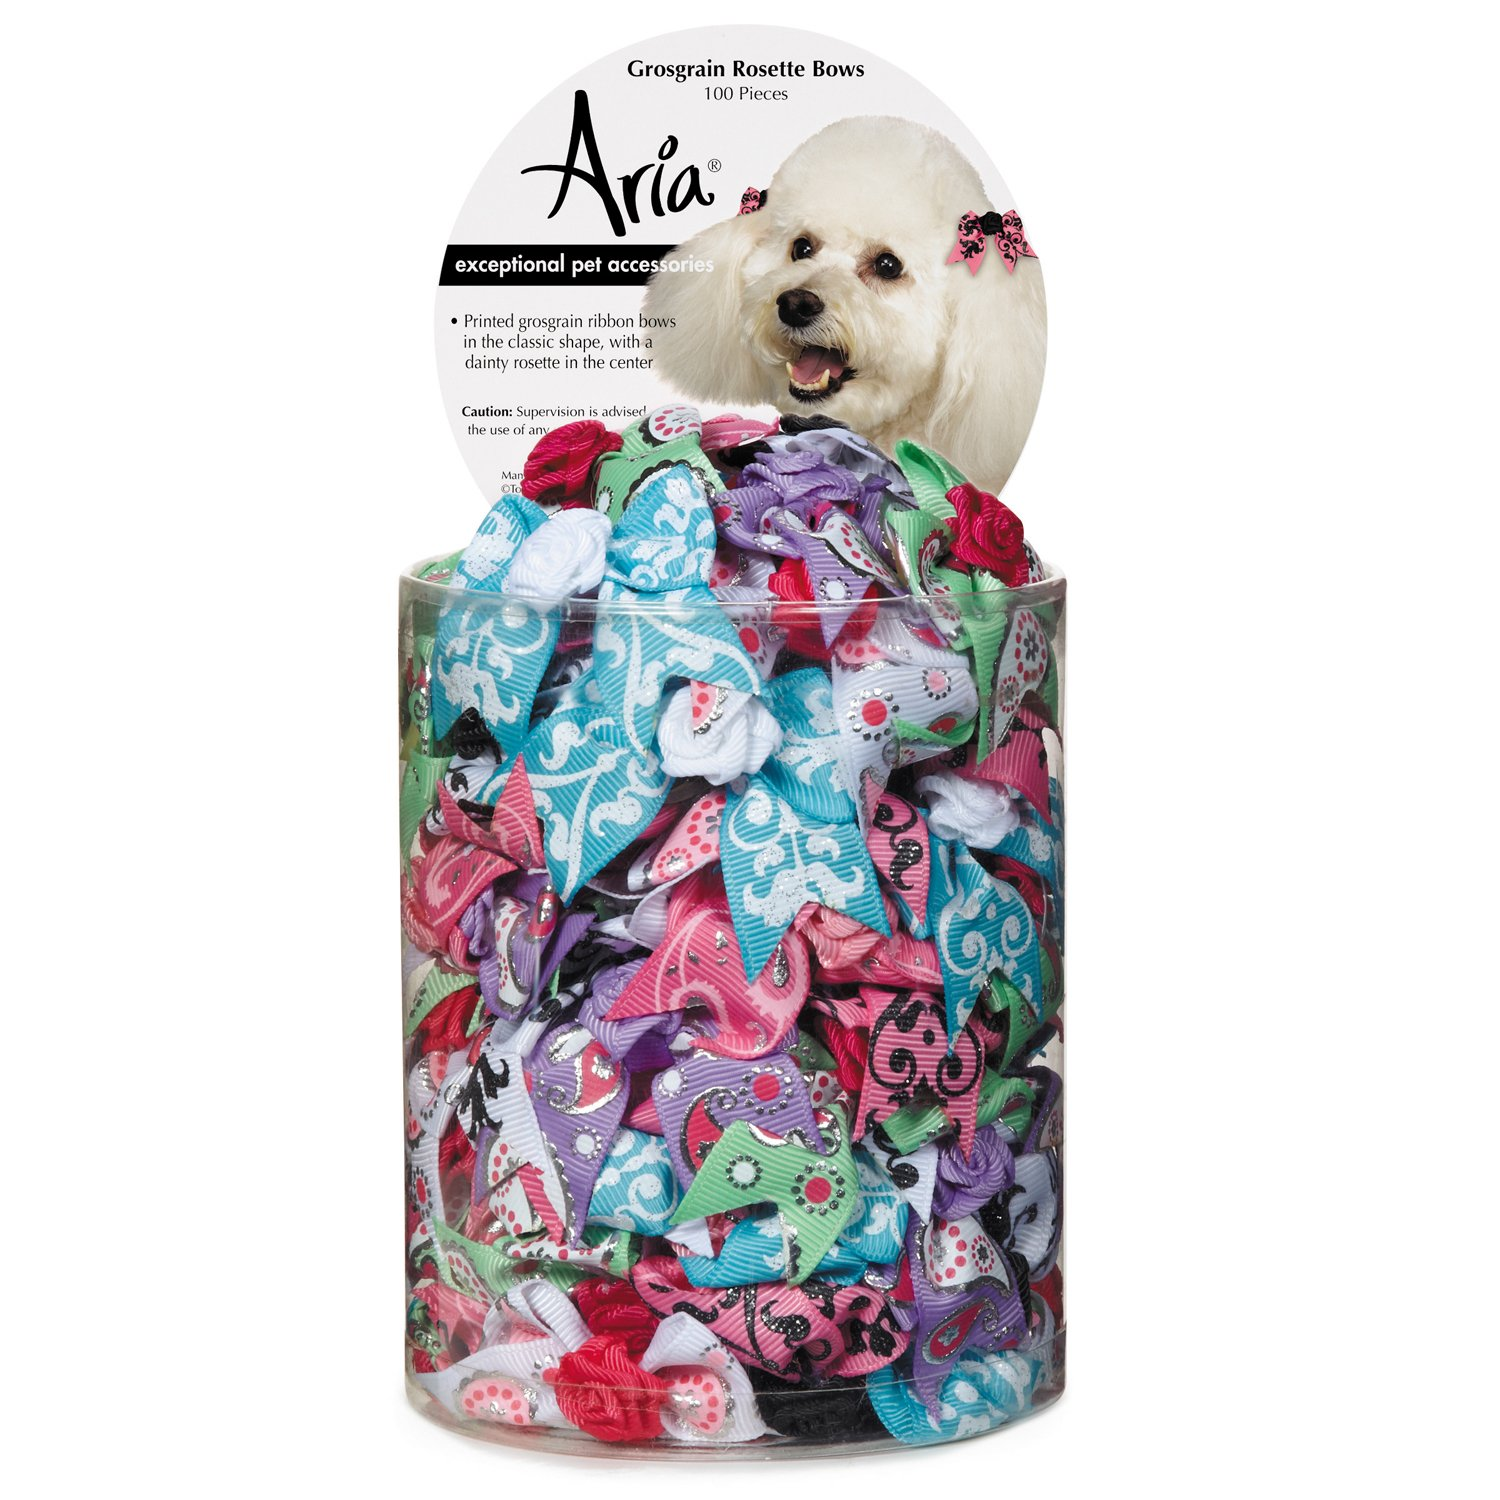 Aria Grosgrain Rosette 100 Piece Bows for Dogs by Aria